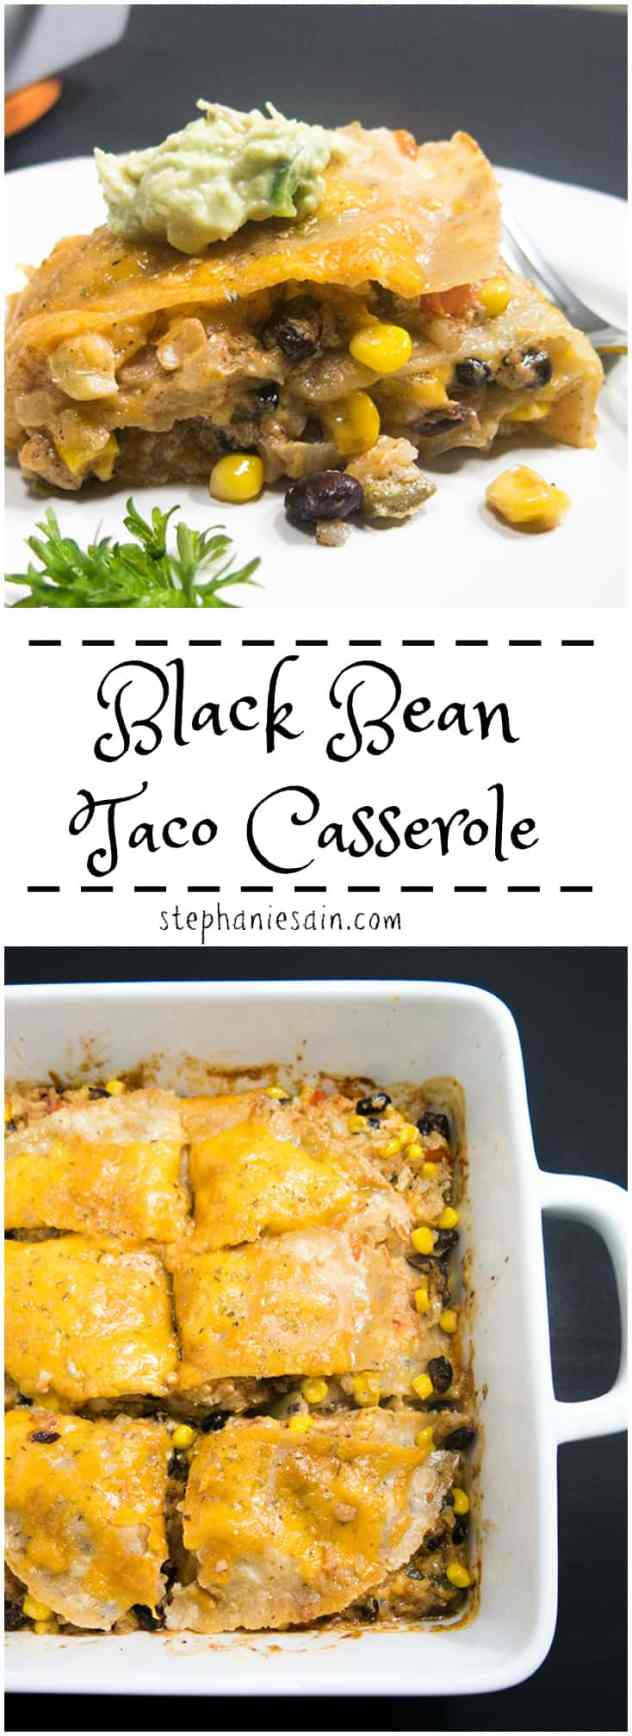 Black Bean Taco Casserole as an easy to prepare tasty, family friendly meal. Perfect to serve on busy weeknights. Gluten Free and Vegetarian.